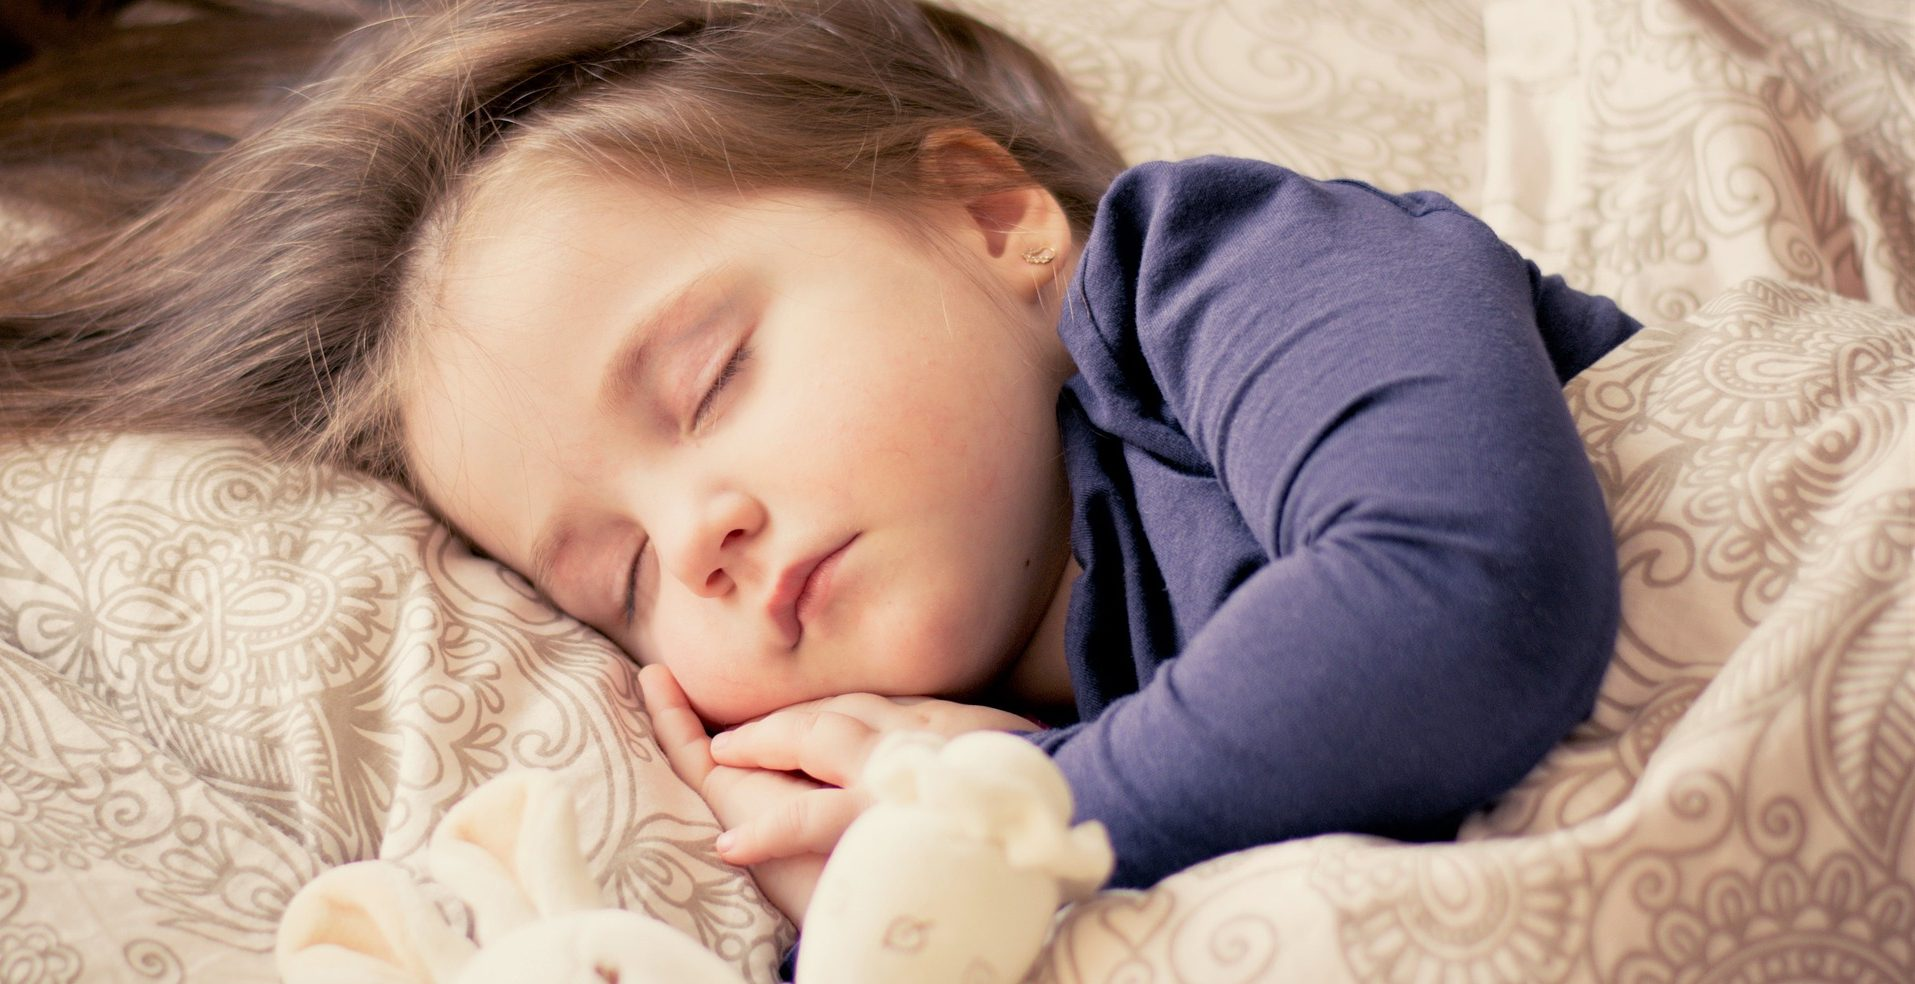 Sleep: What Children Need to Stay Healthy